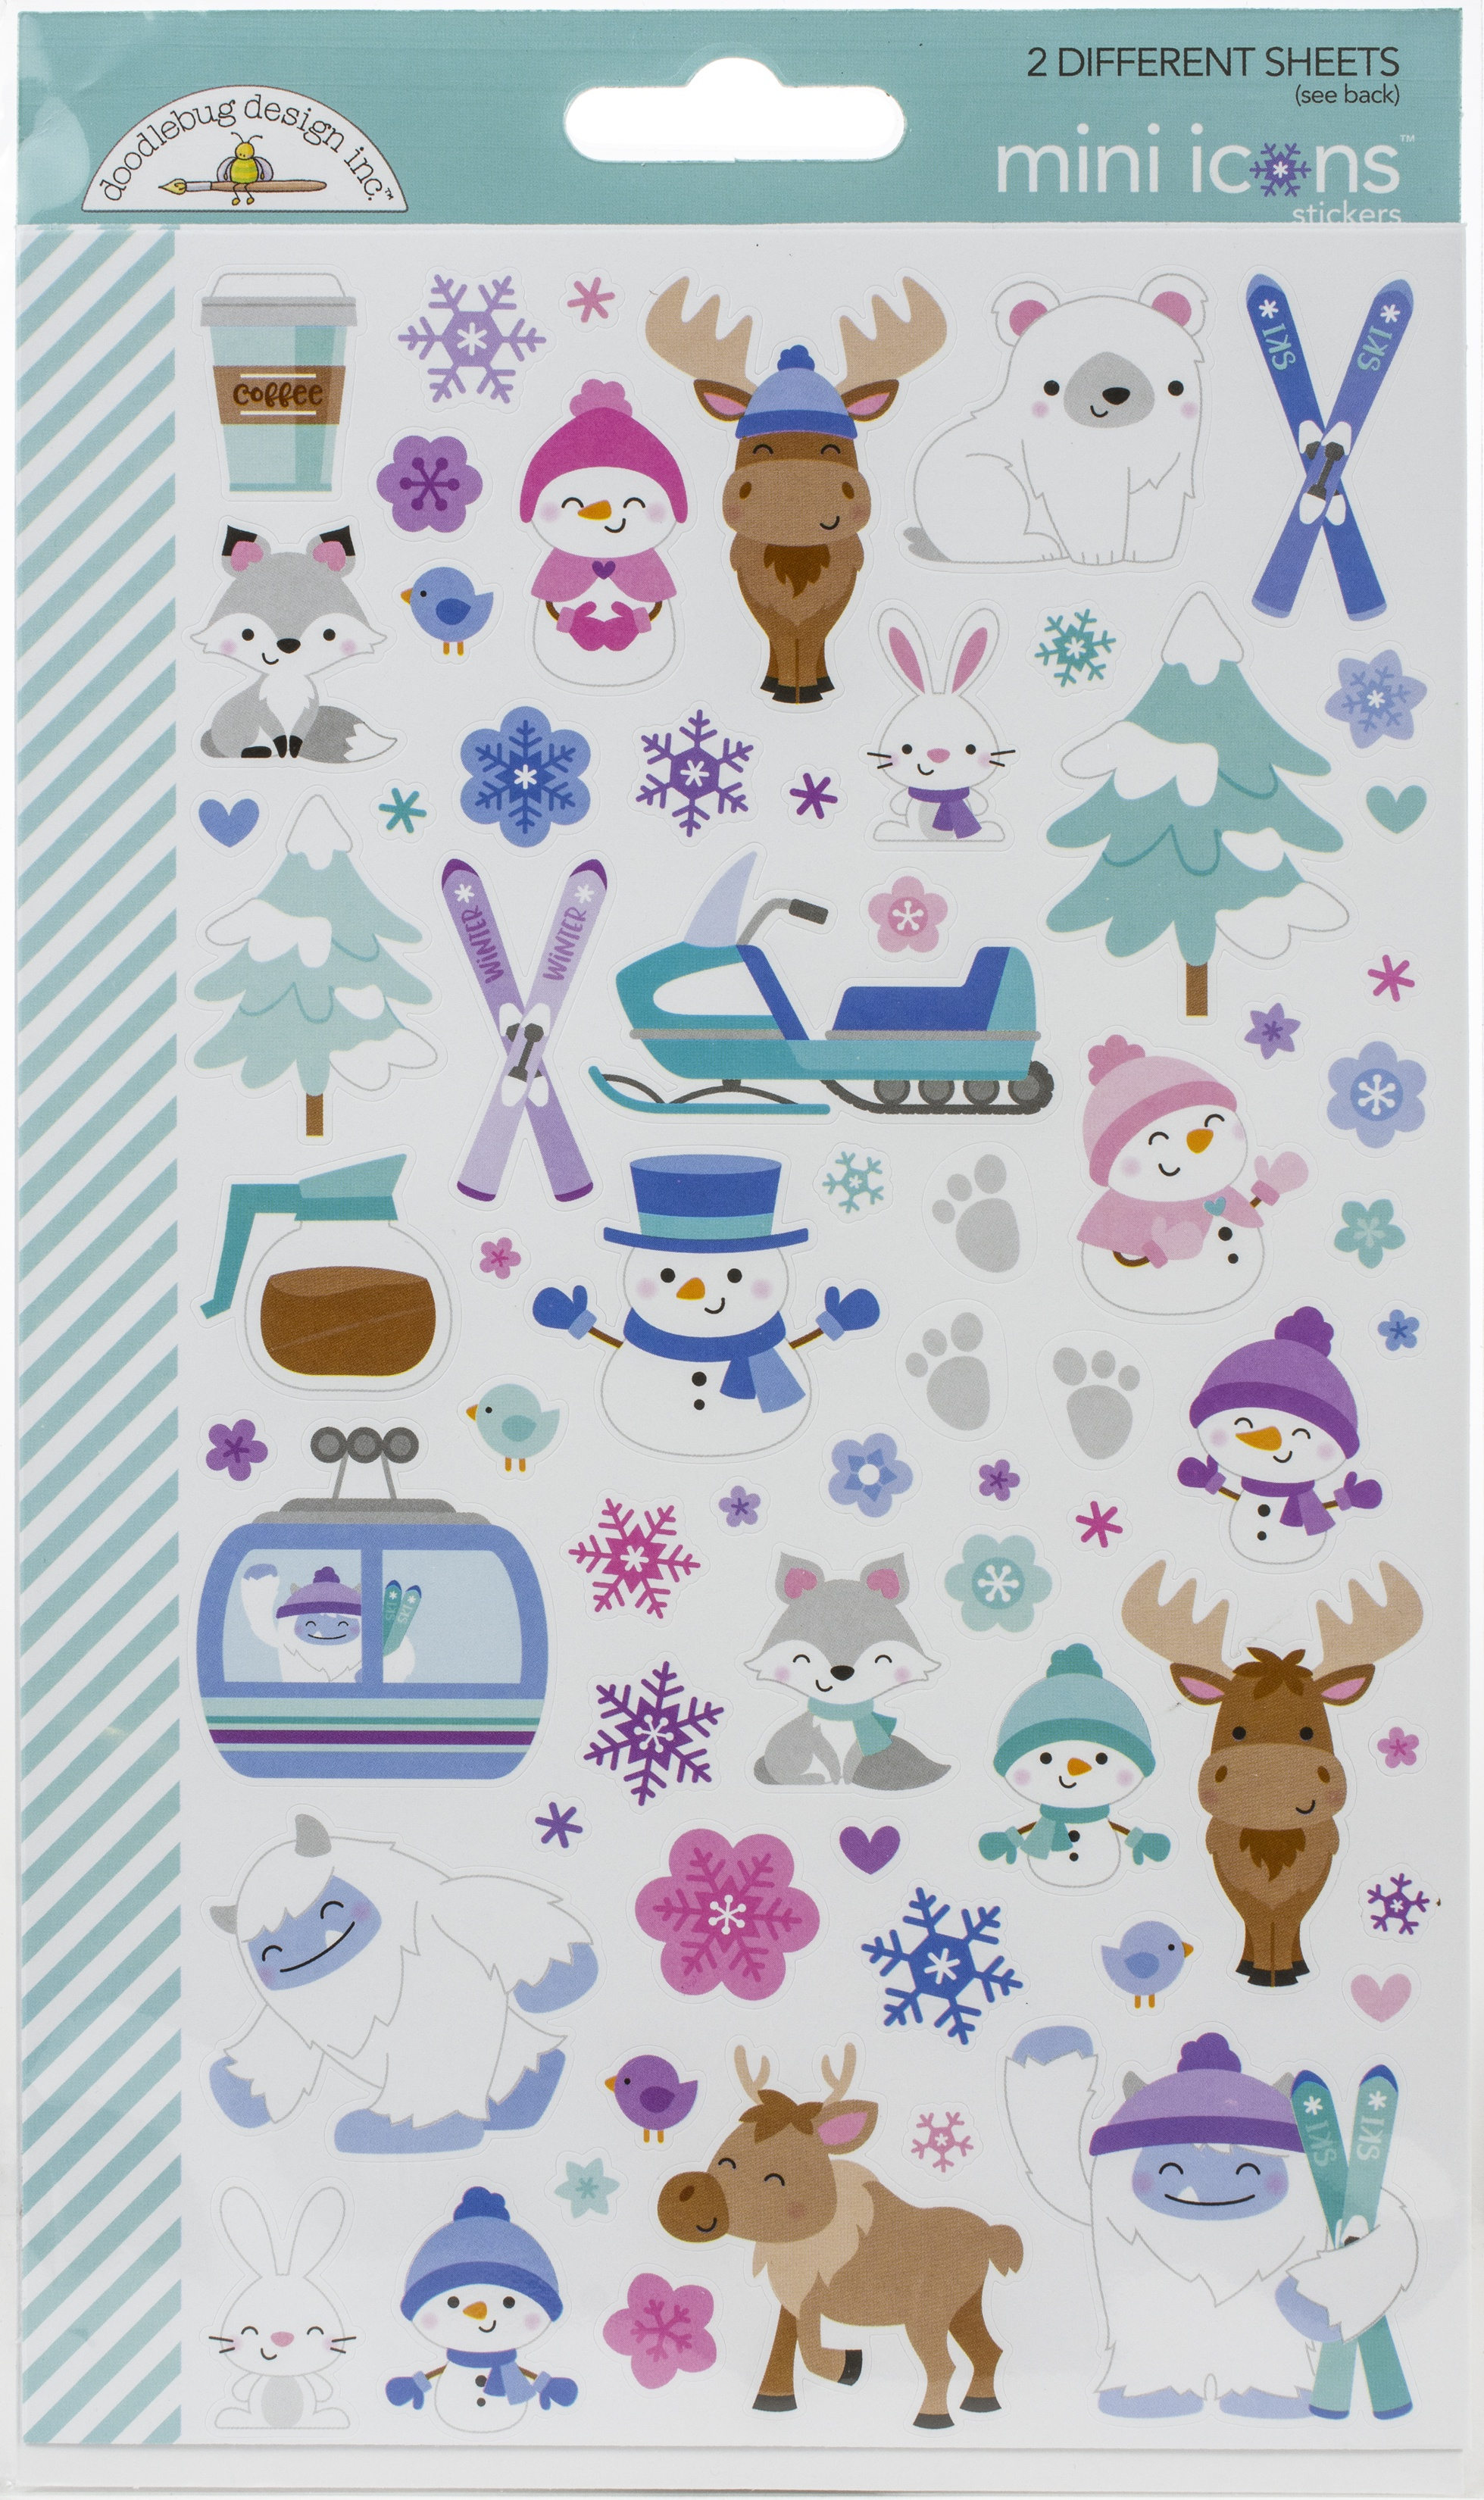 DB Stickers Winter Wonderland Mini Icons